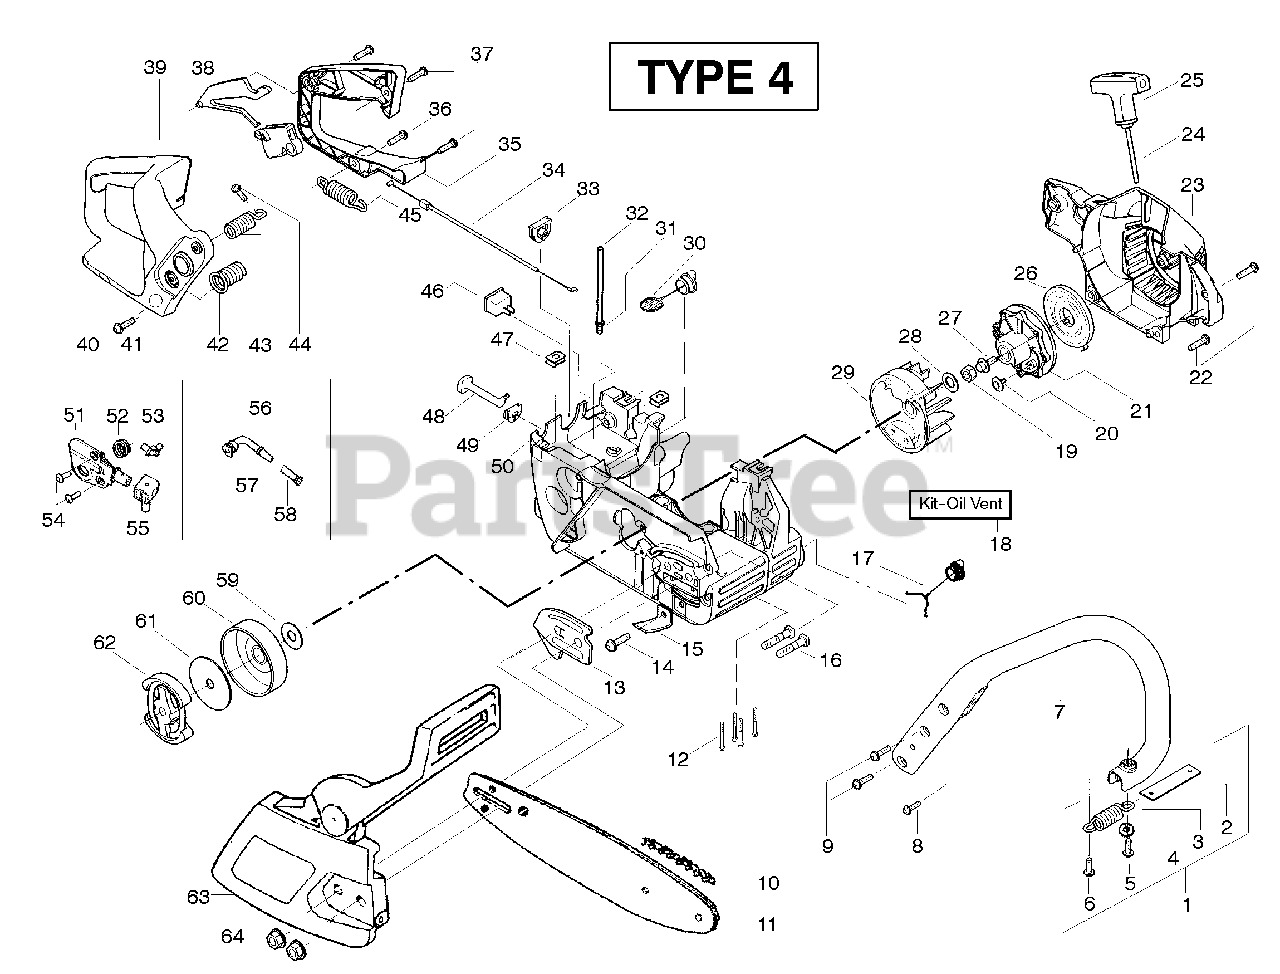 Poulan Pro Parts on the Starter Type 4 Diagram for PP 220